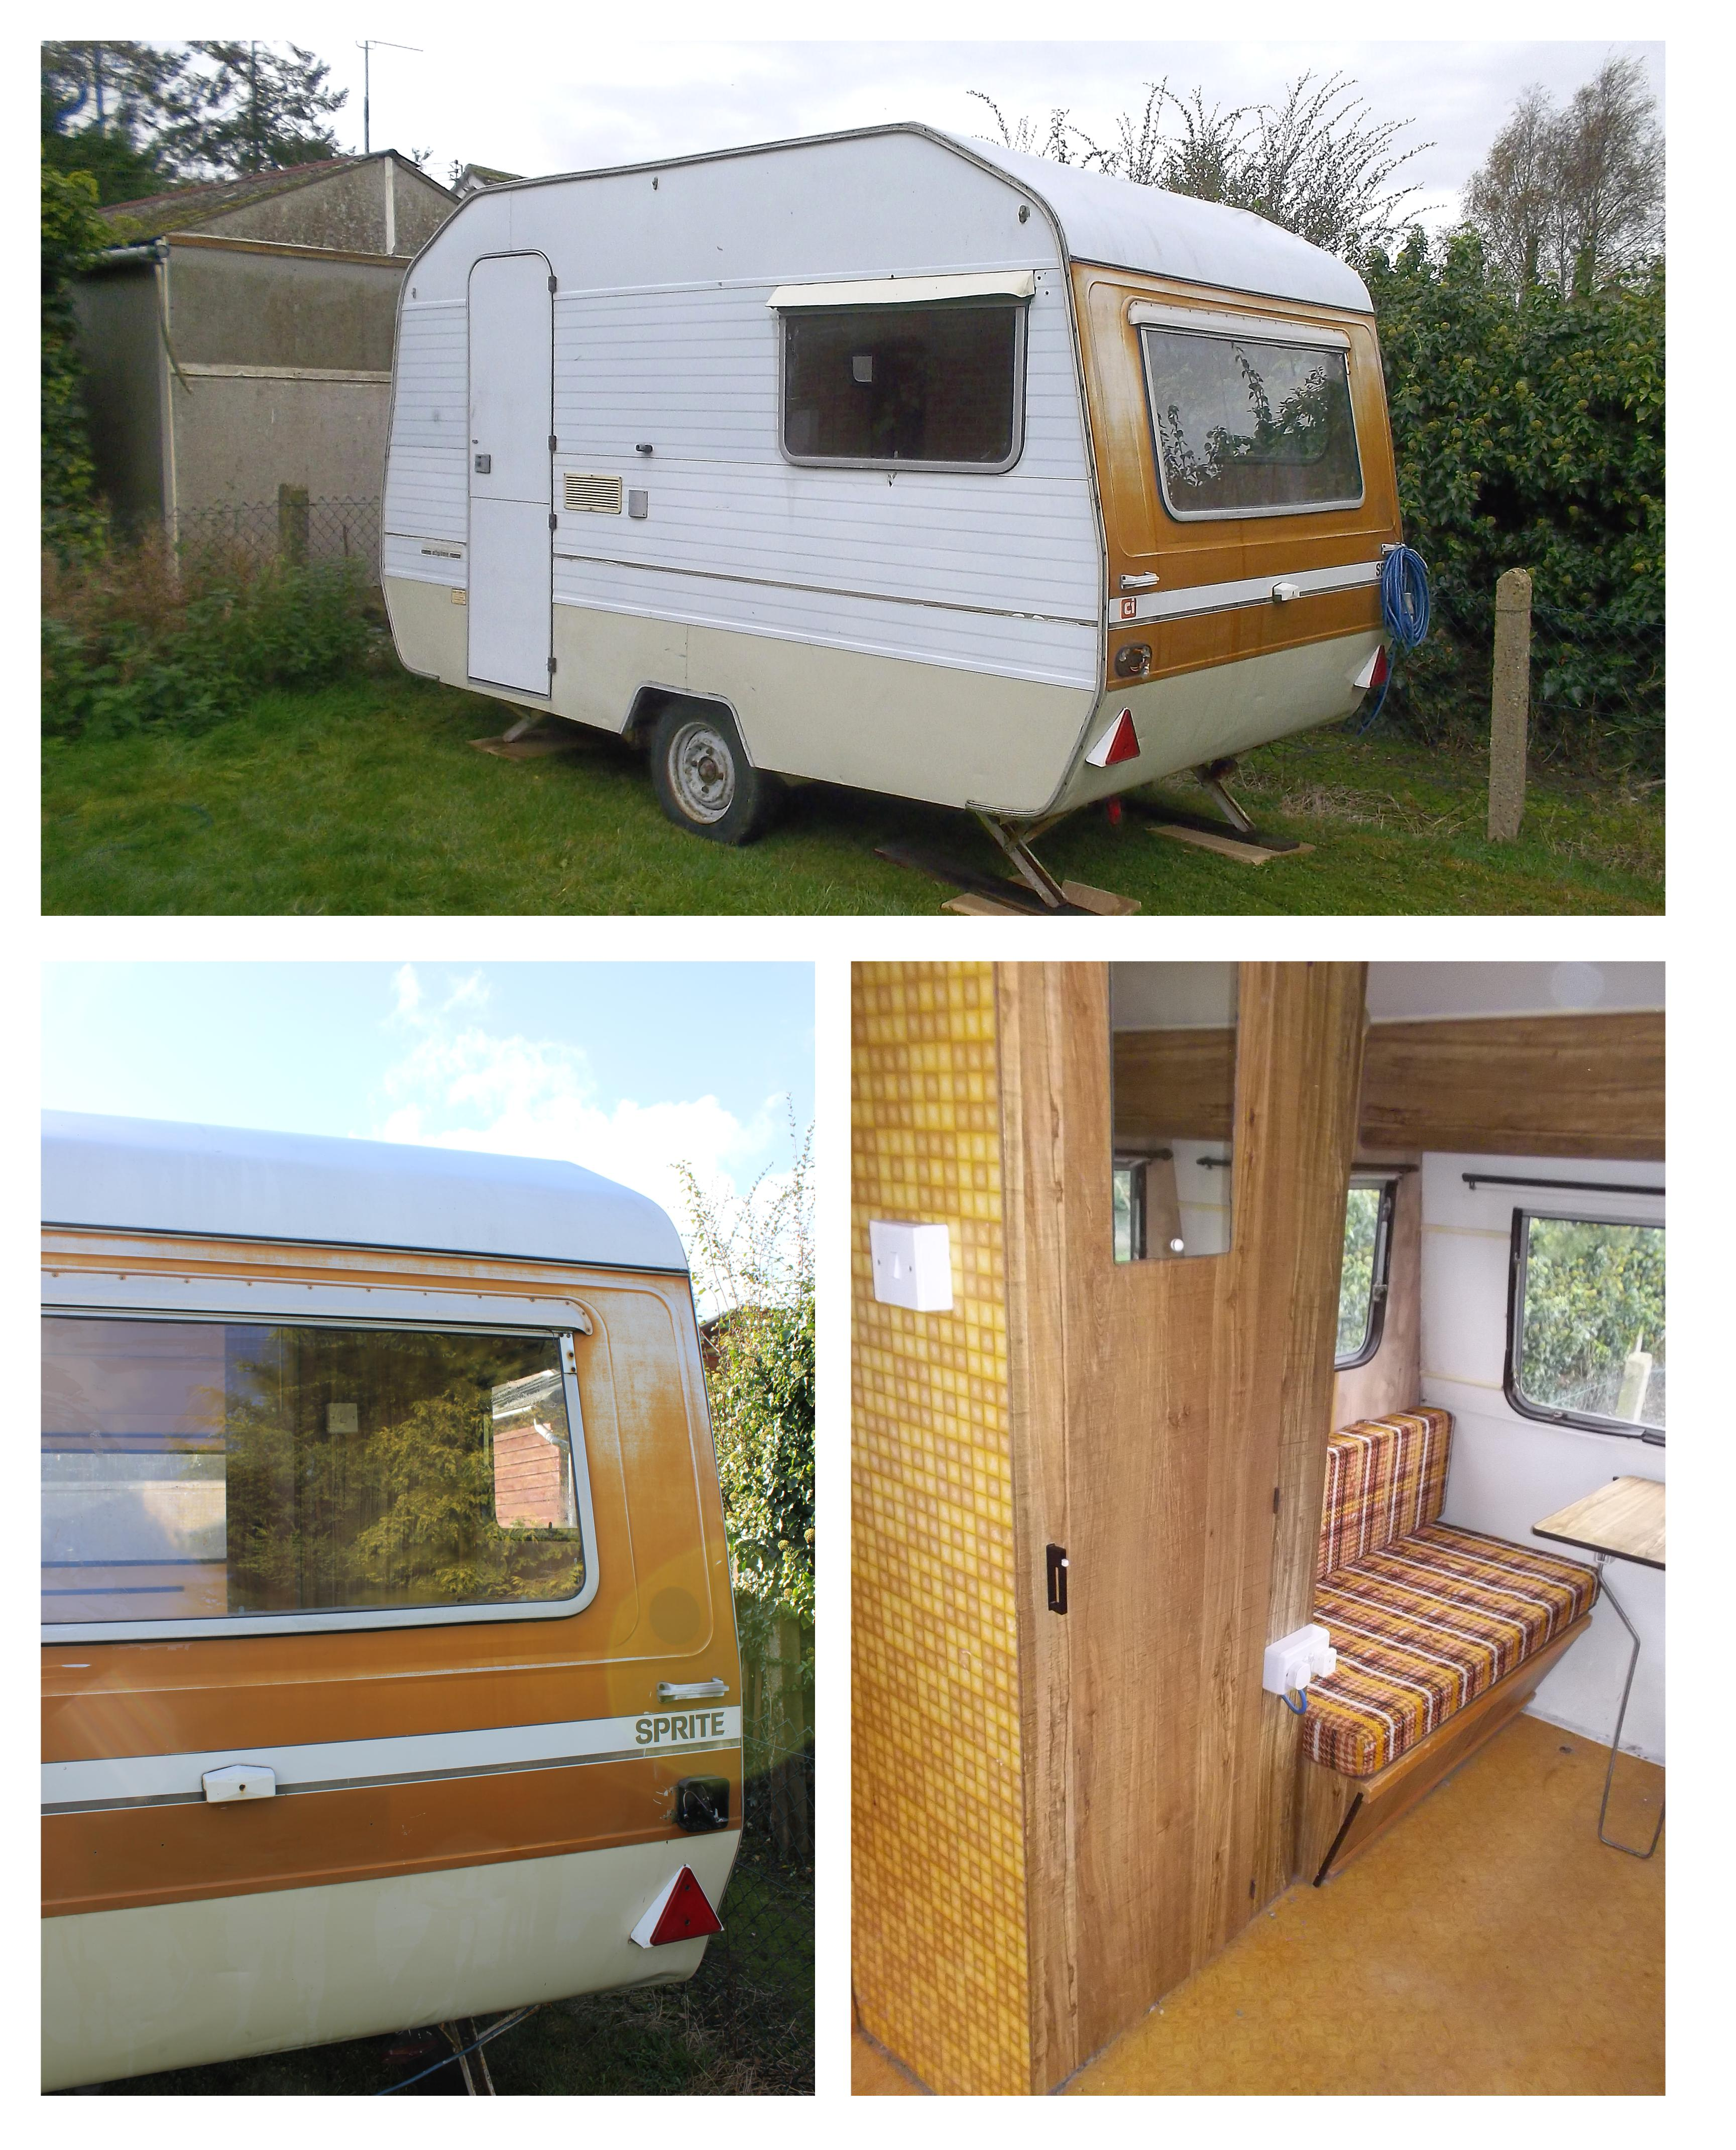 A Massive New Project For Cassiefairy My Vintage Caravan Cassiefairy My Thrifty Life